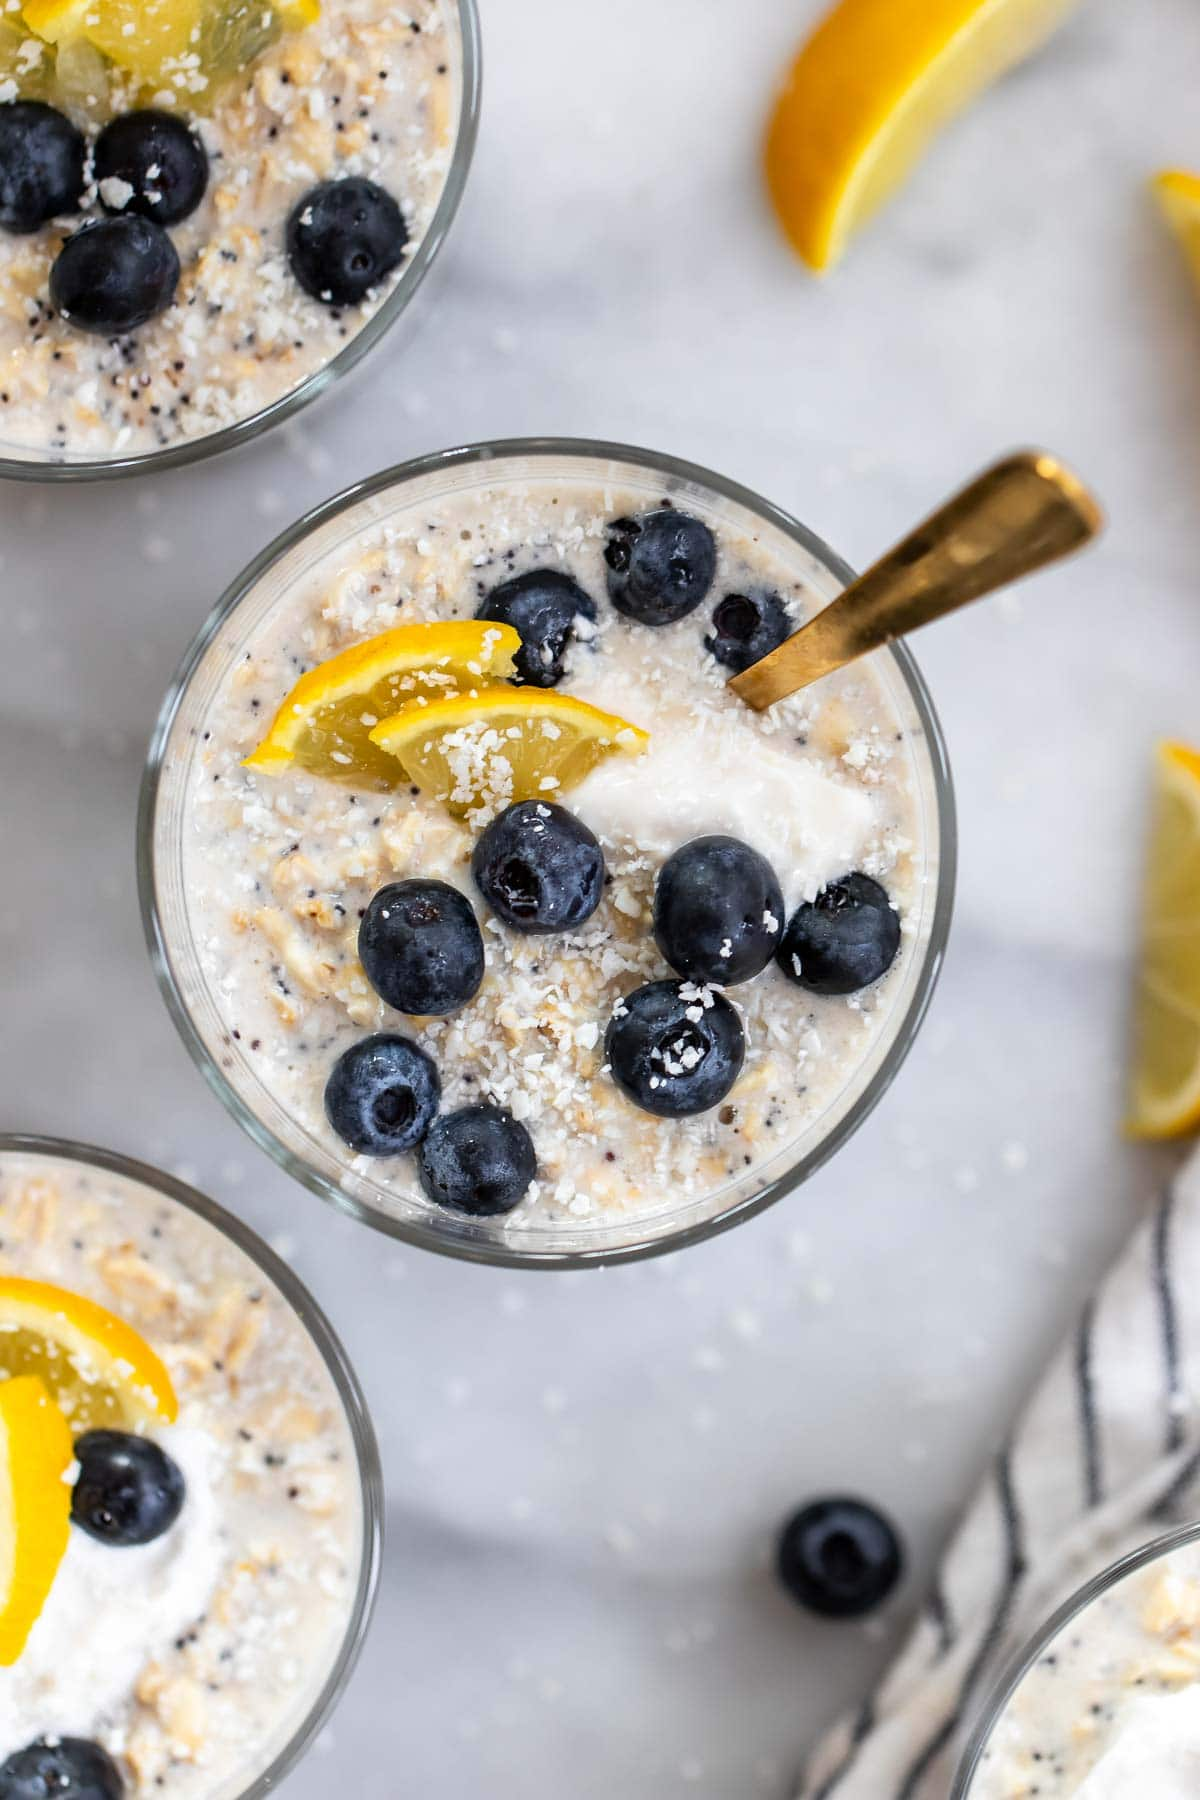 Overhead show of the overnight oats with yogurt and blueberries on top.